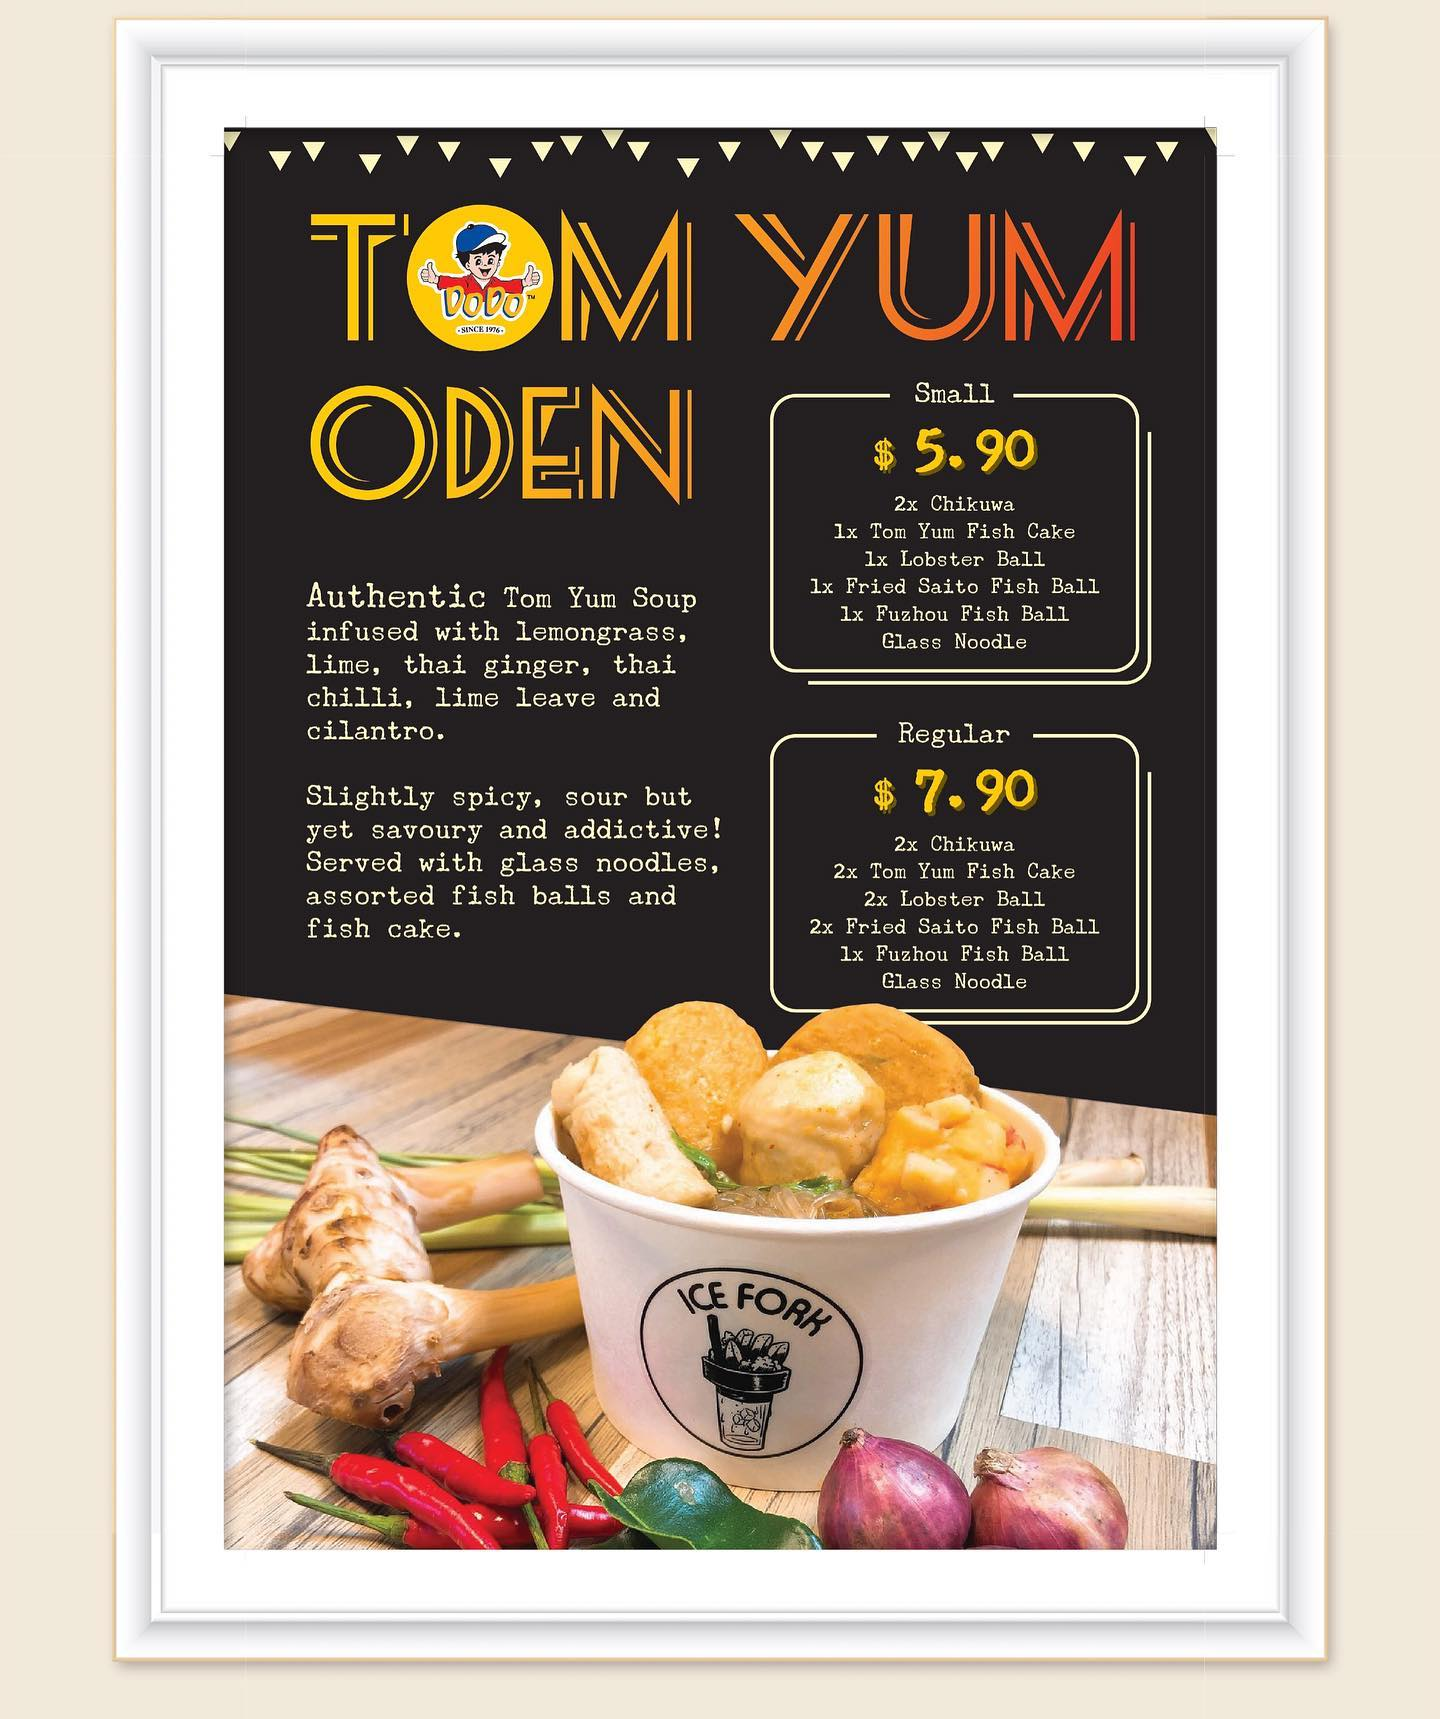 Ice Fork Singapore 20% Off Ice Fork Thai Tom Yum Oden Promotion only on 9 Oct 2019 | Why Not Deals & Promotions